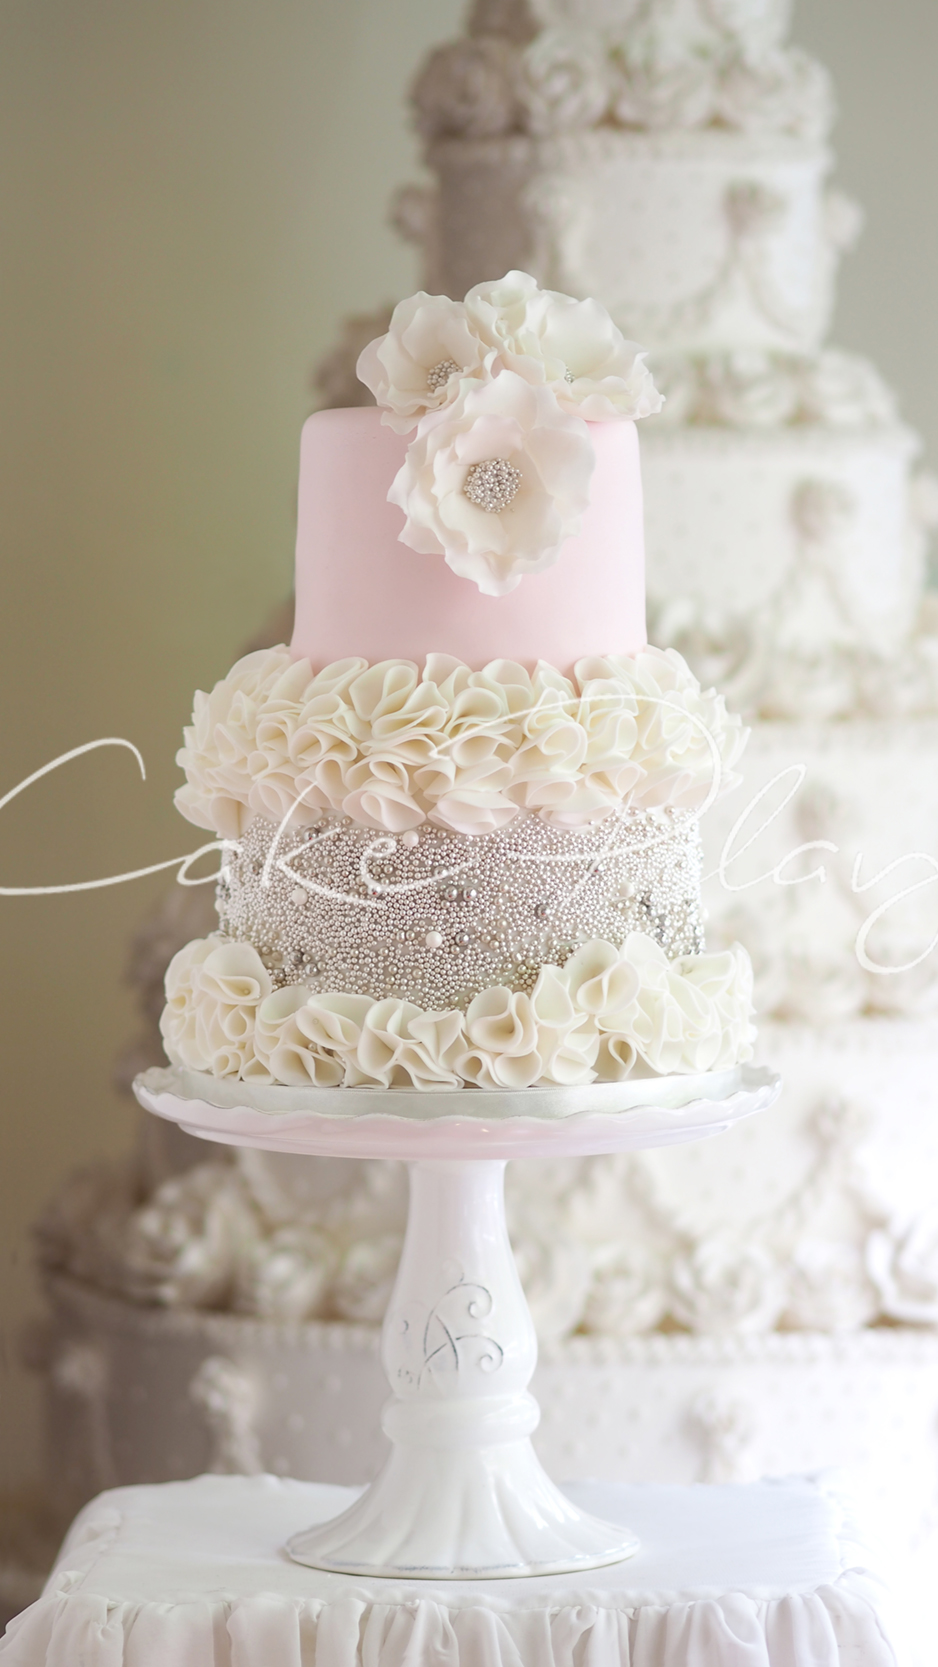 Wedding Cake With Candy On It